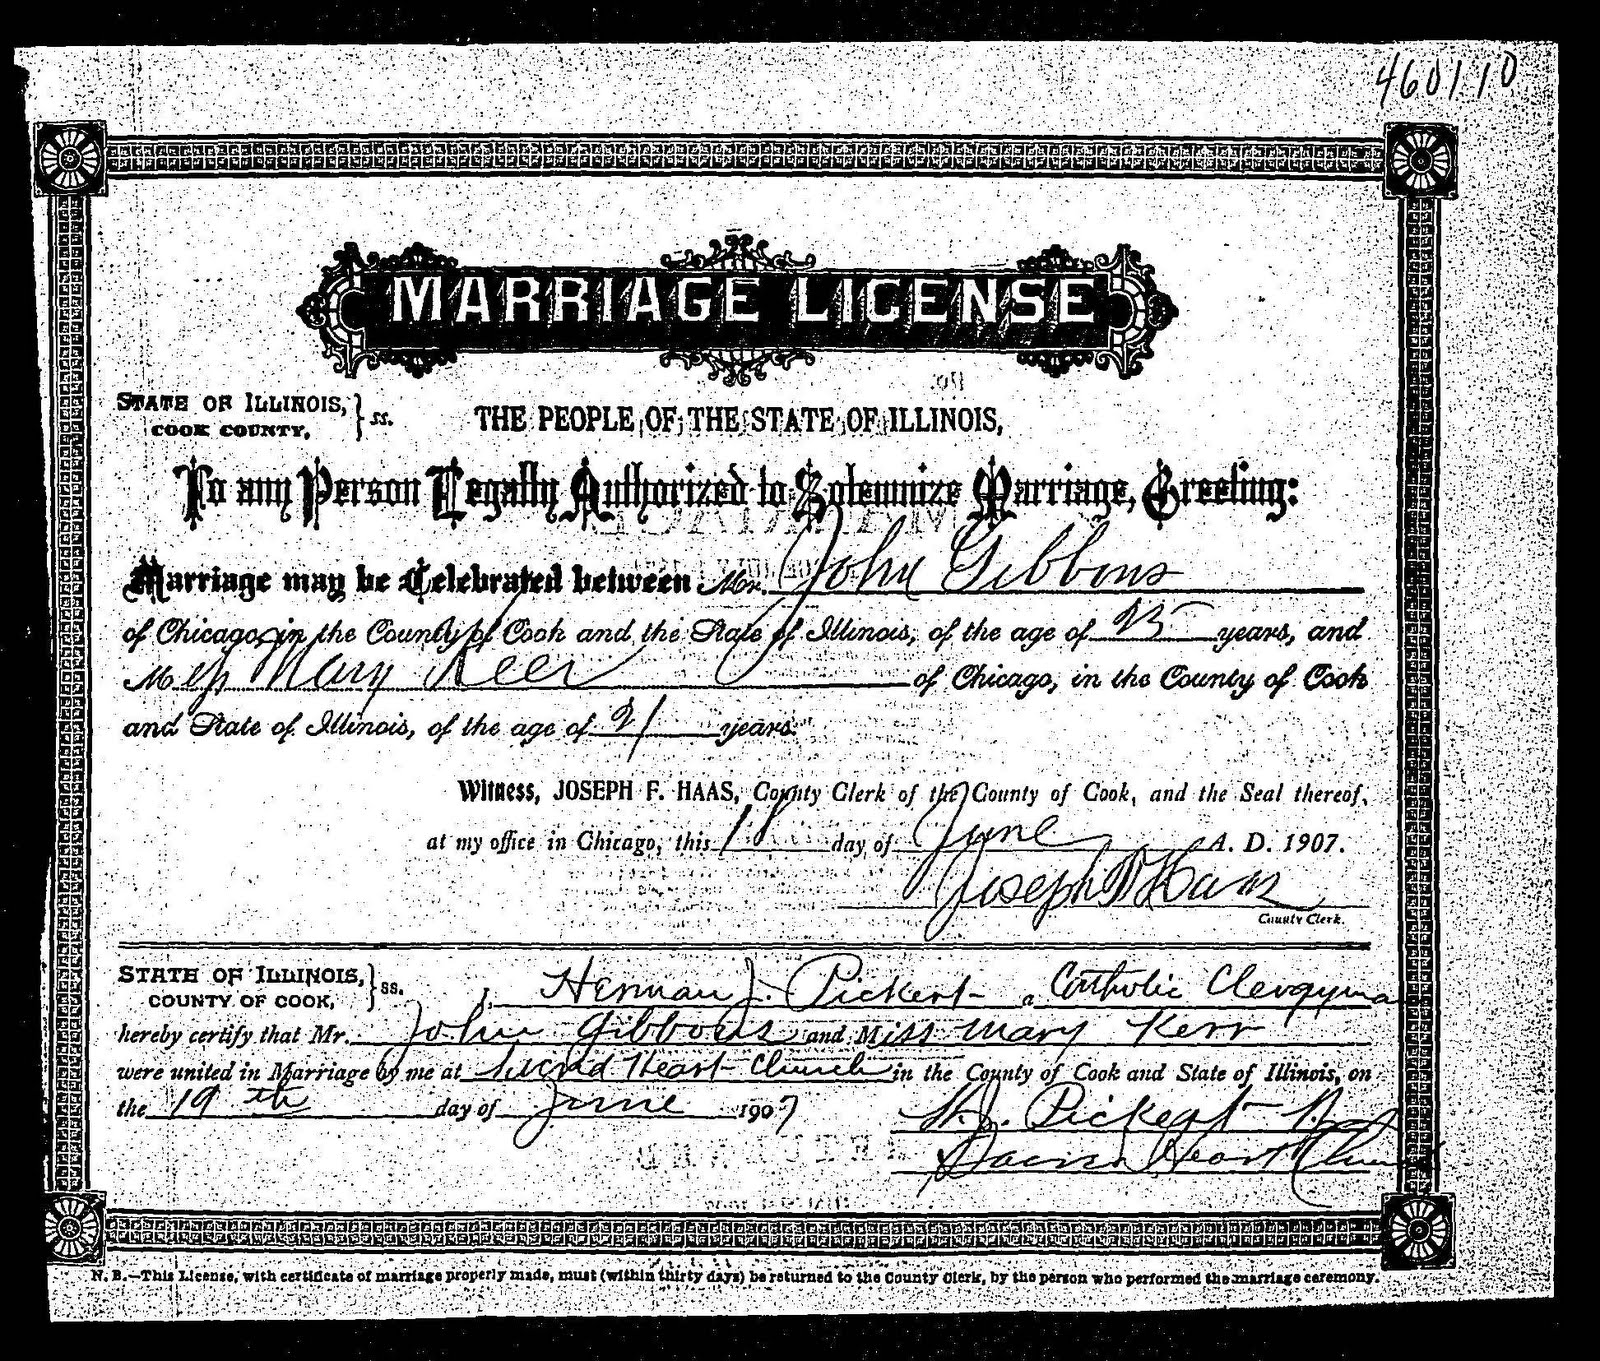 kerr marriage certificate county cook mae gibbons illinois john